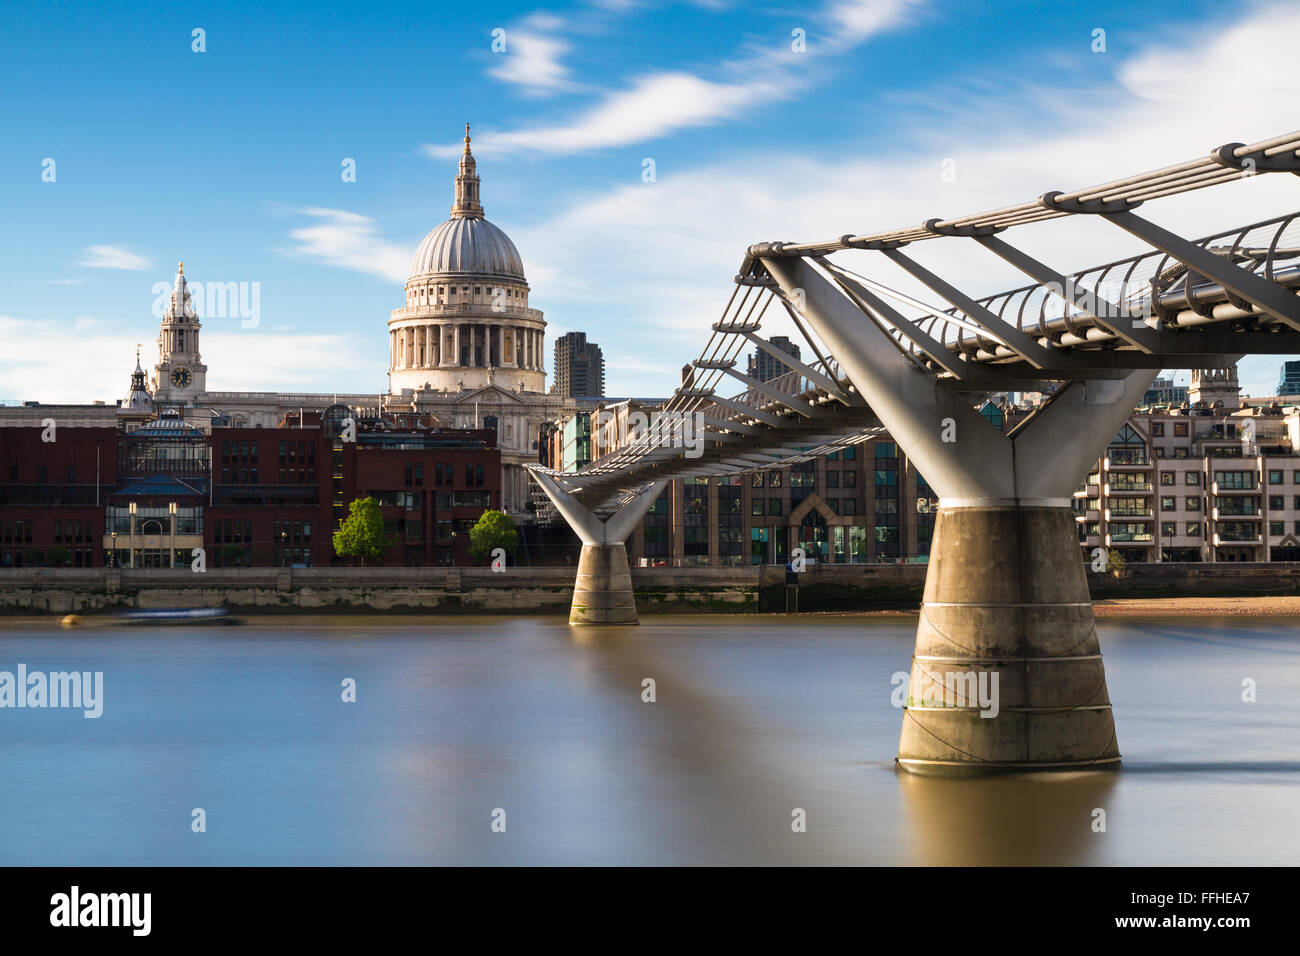 St.Pauls cathedral - Long Exposure version, London, England - Stock Image